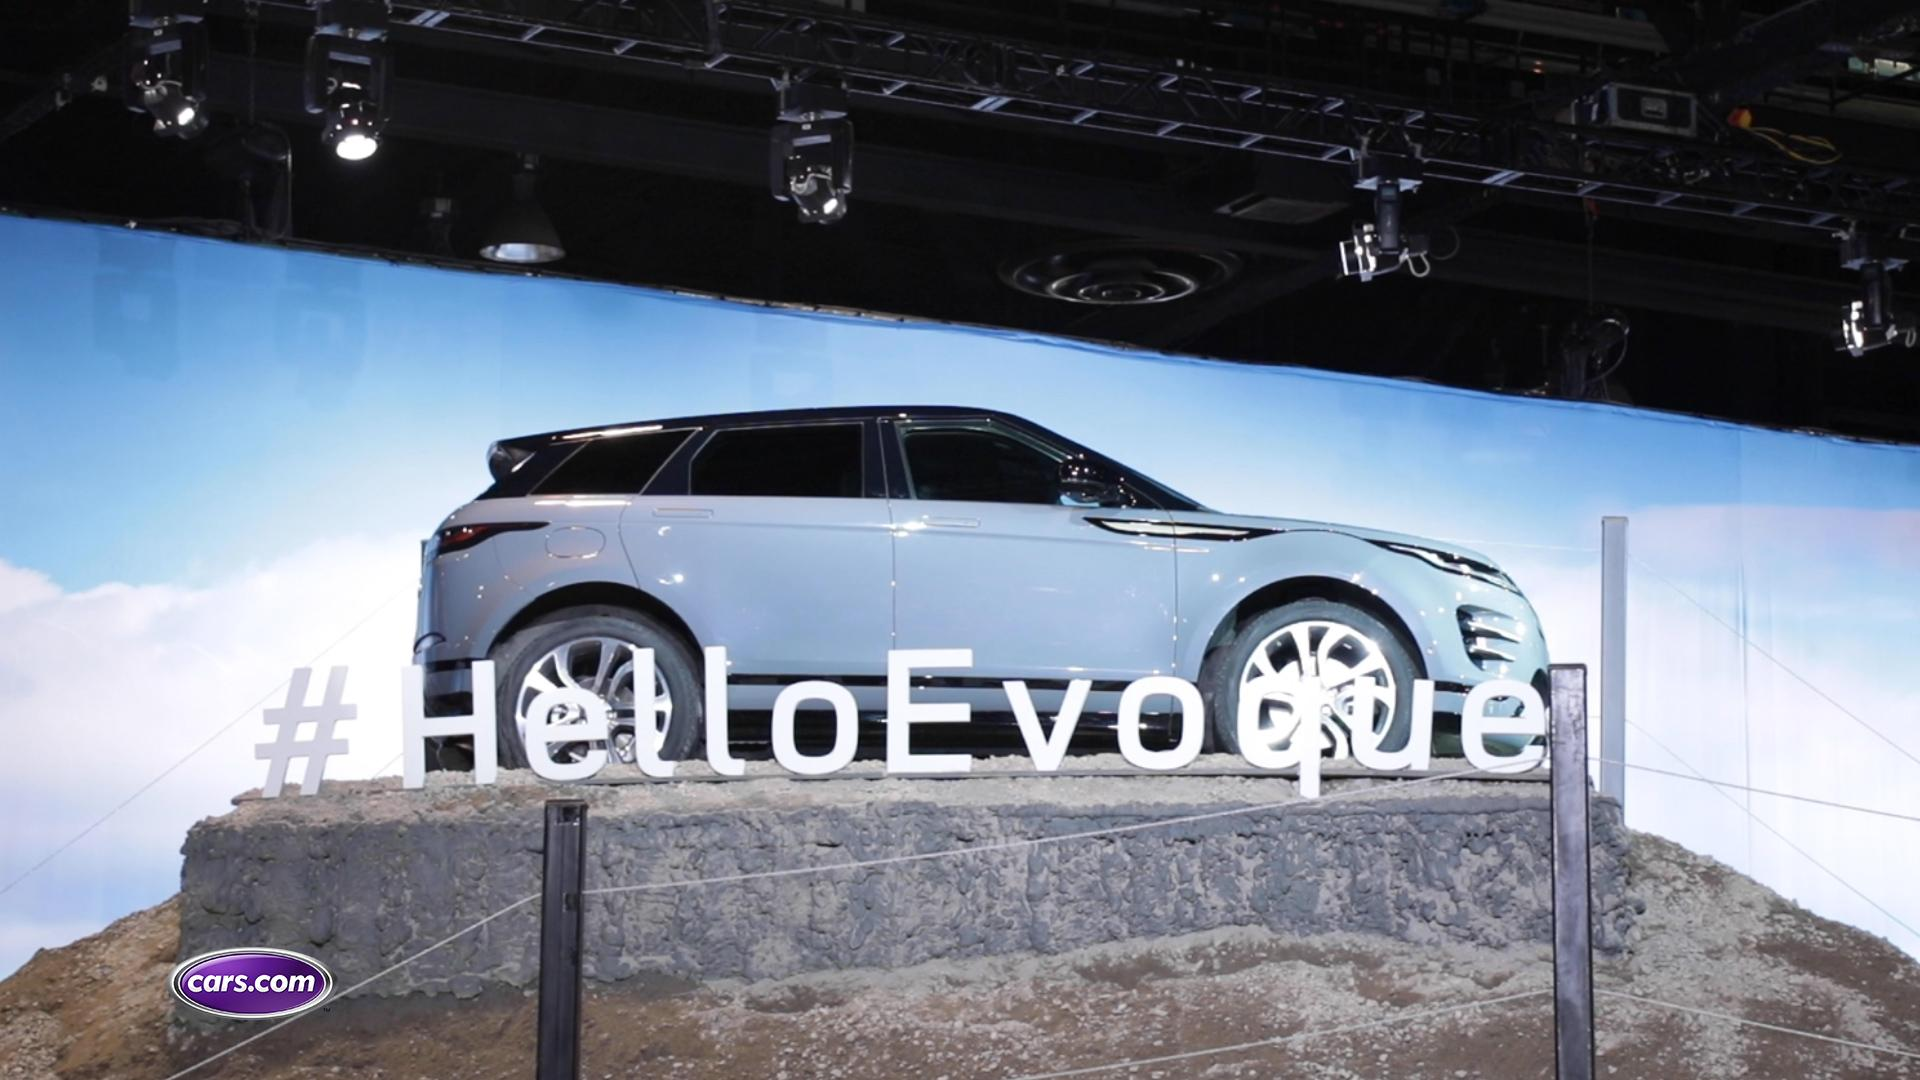 Video: 2020 Land Rover Range Rover Evoque: First Look — Cars.com